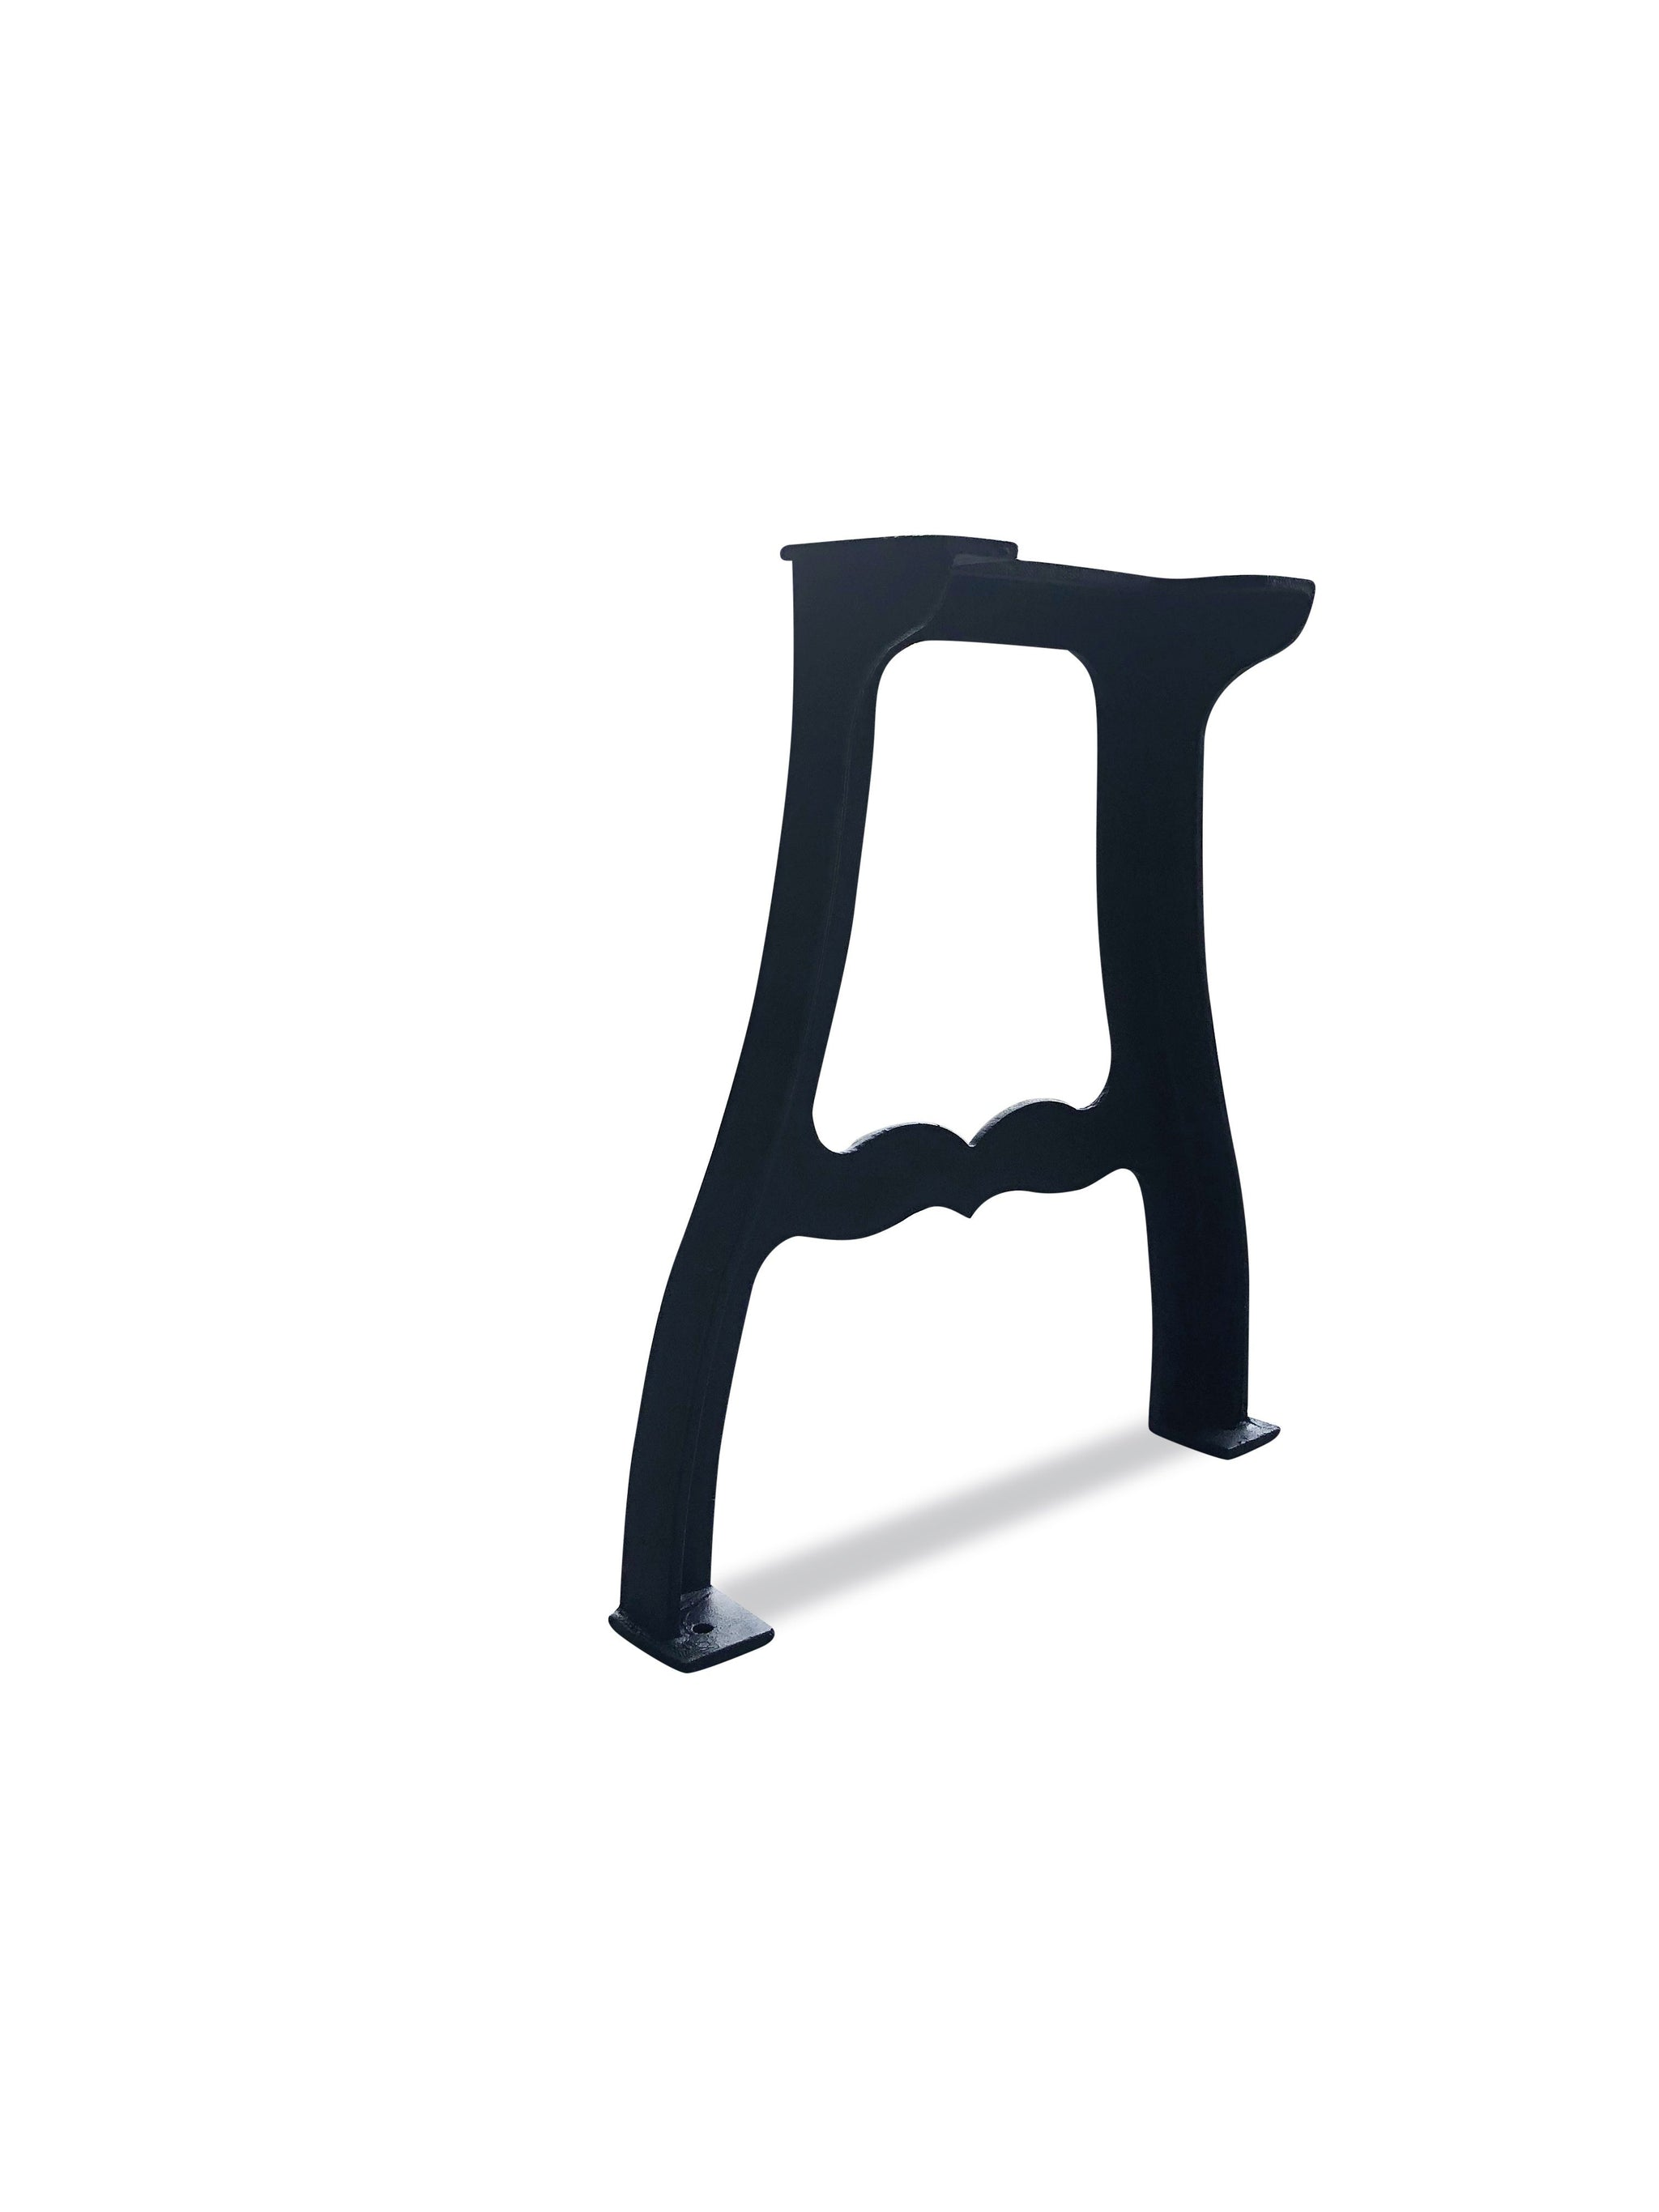 Prime Vintage Industrial Ductile Cast Iron Table Legs Base Set Pdpeps Interior Chair Design Pdpepsorg